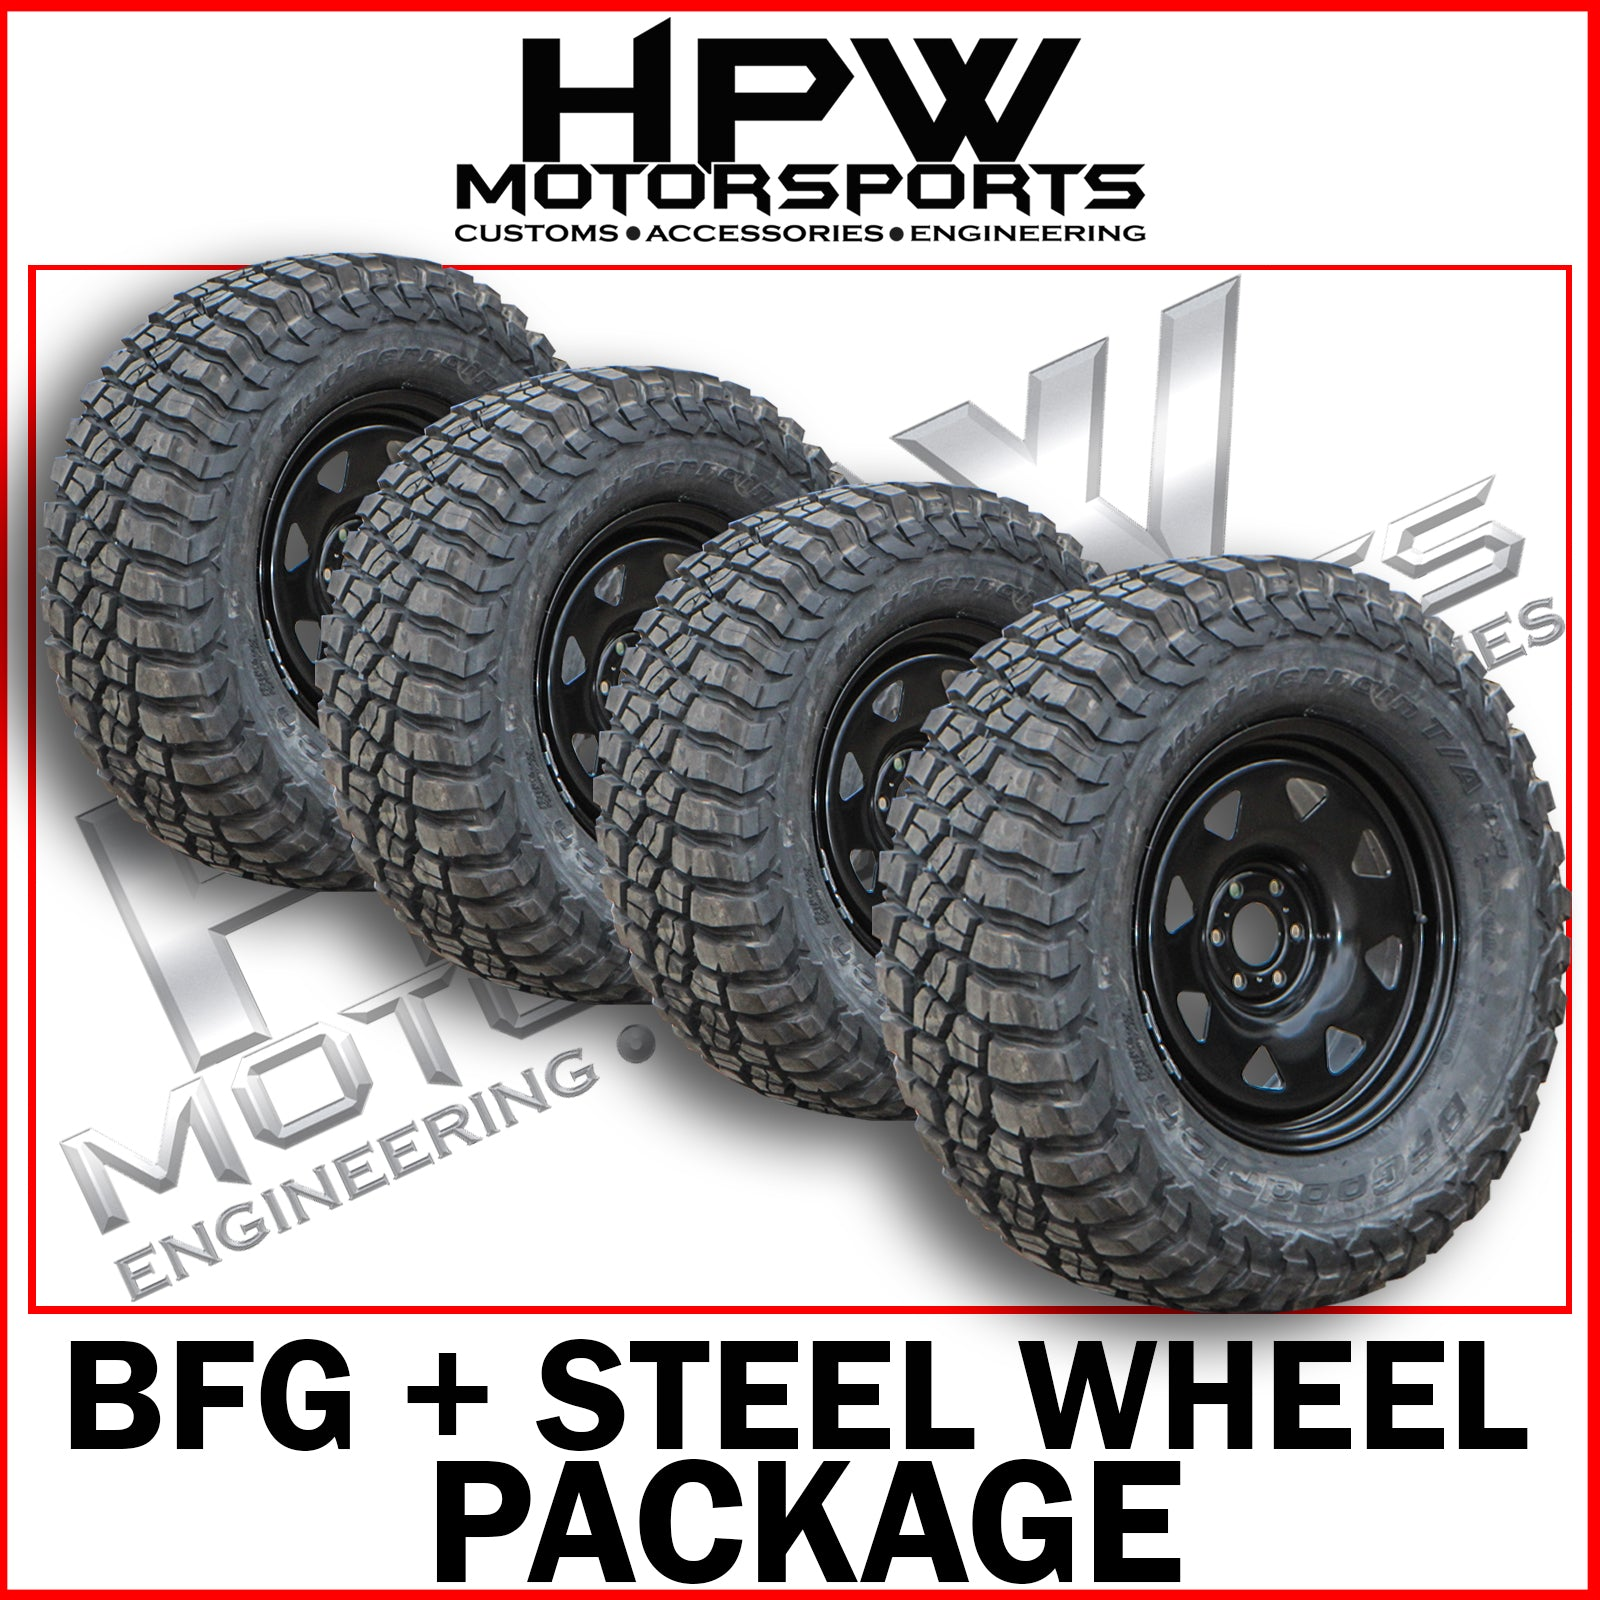 265/65/17 A/T BFGOODRICH TYRES & DYNAMIC STEEL WHEELS 17X8 (SET OF 4)